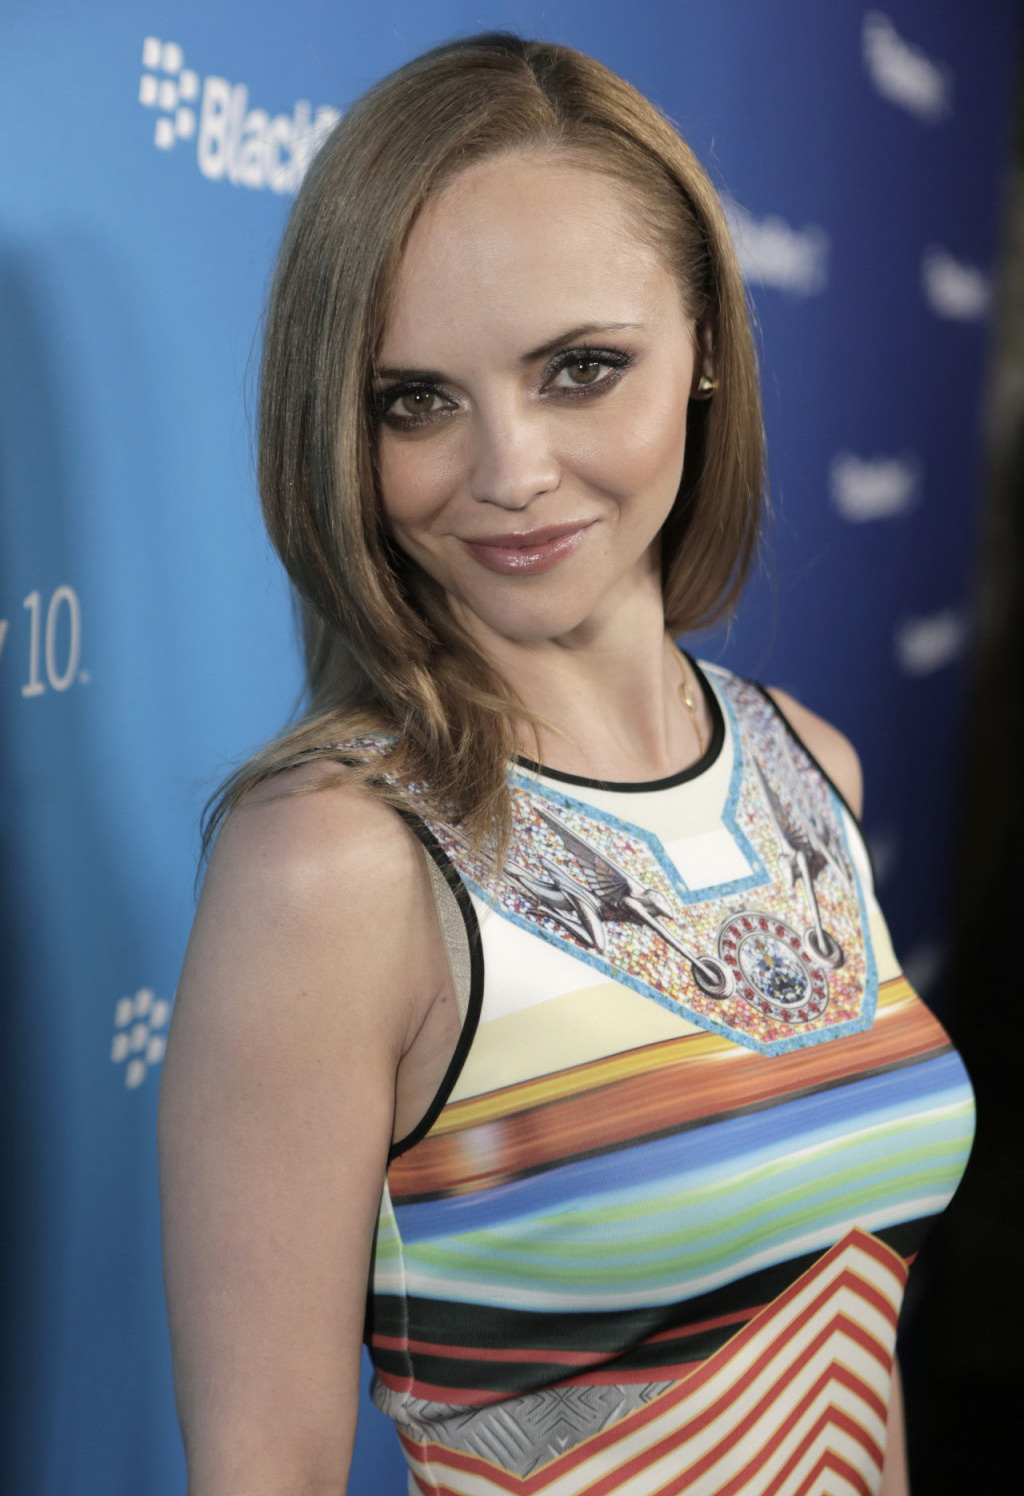 Christina ricci wallpapers high quality download free